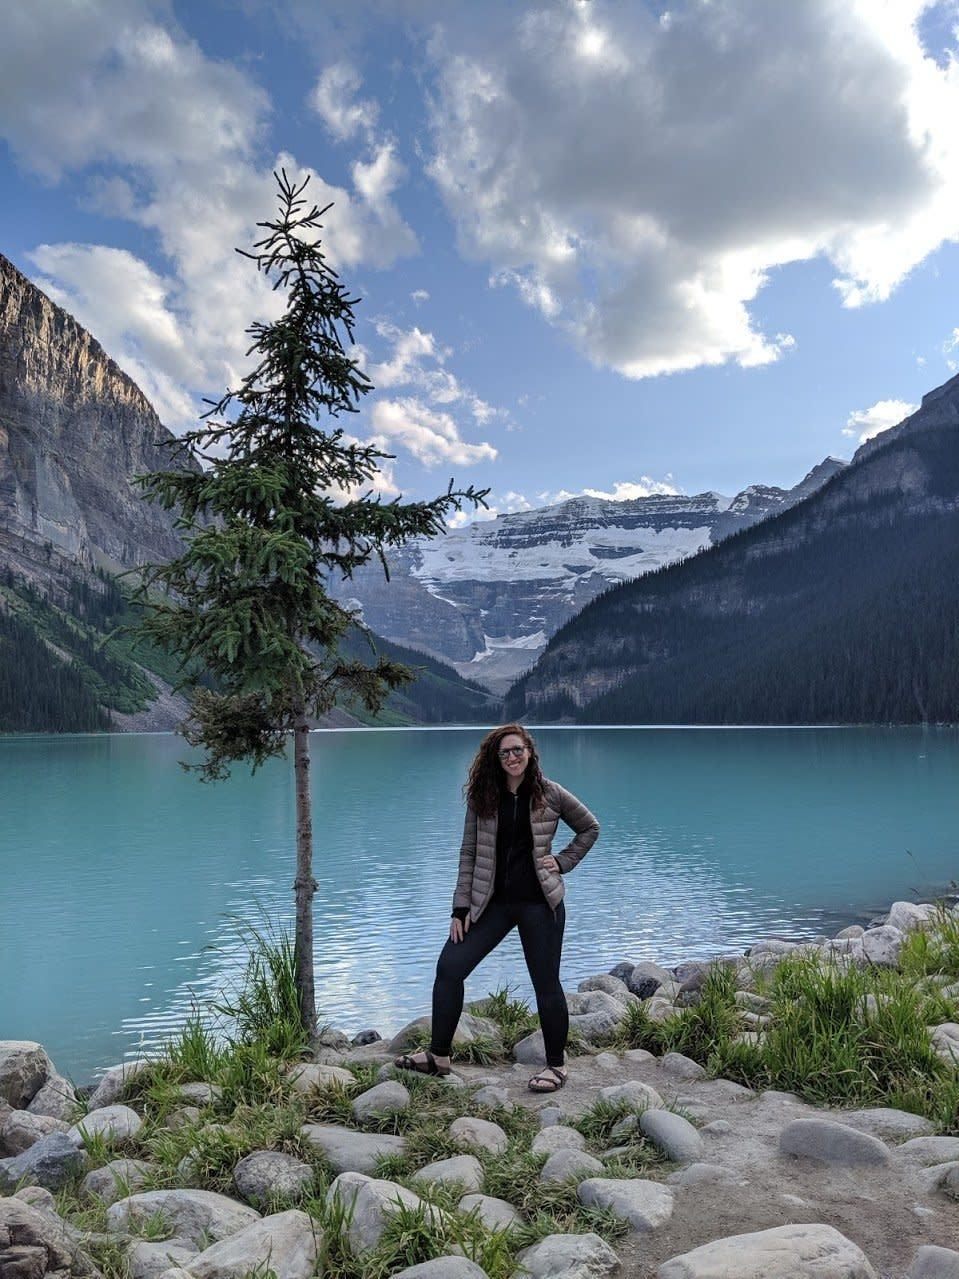 Jen standing in front of a beautiful blue lake with mountains in the background.